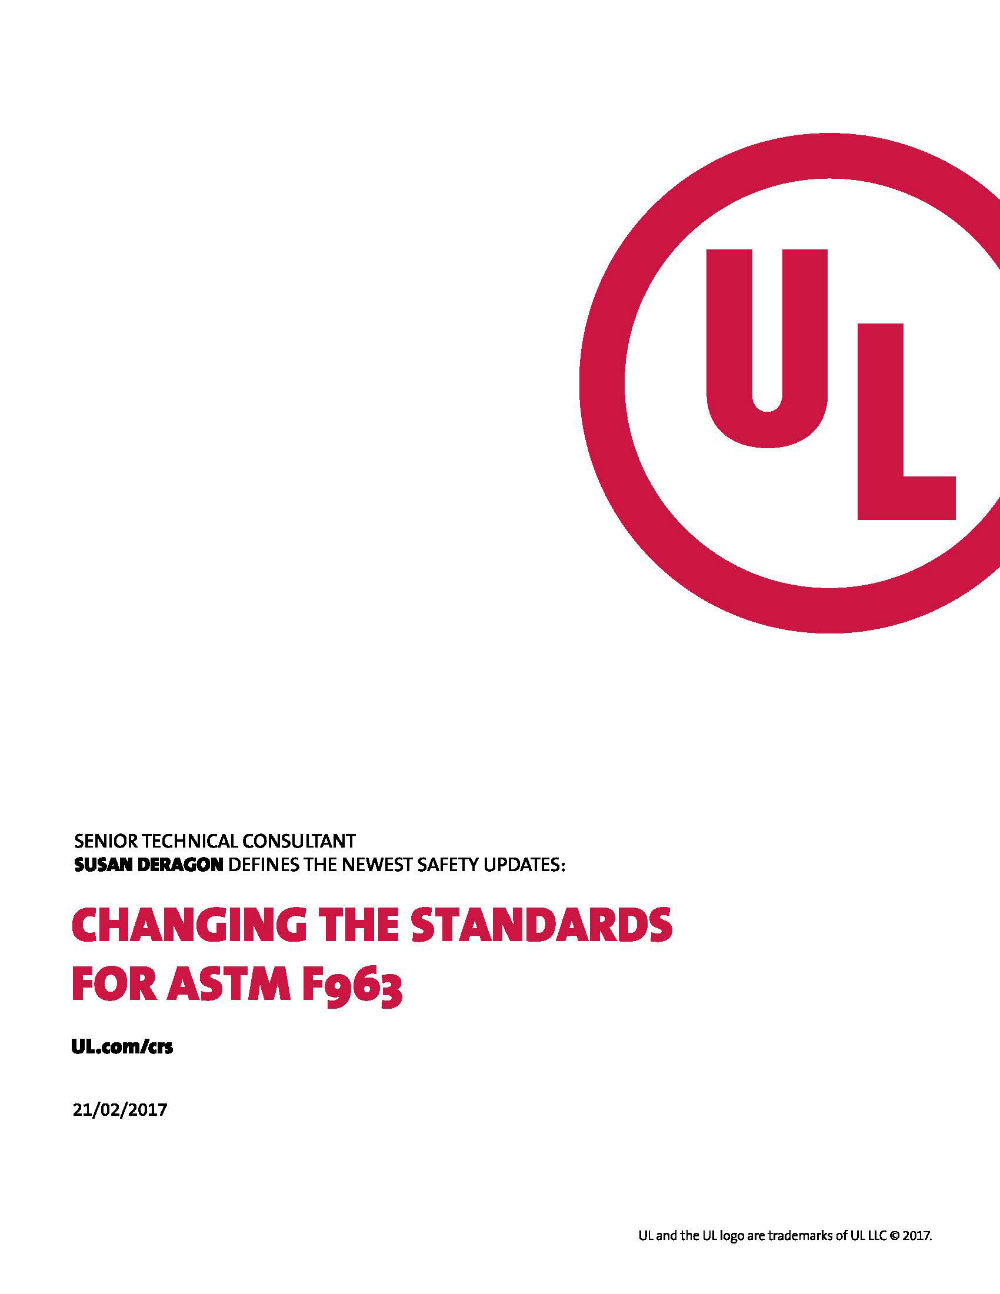 Thumbnail cover - Changing the standards for ASTM F963